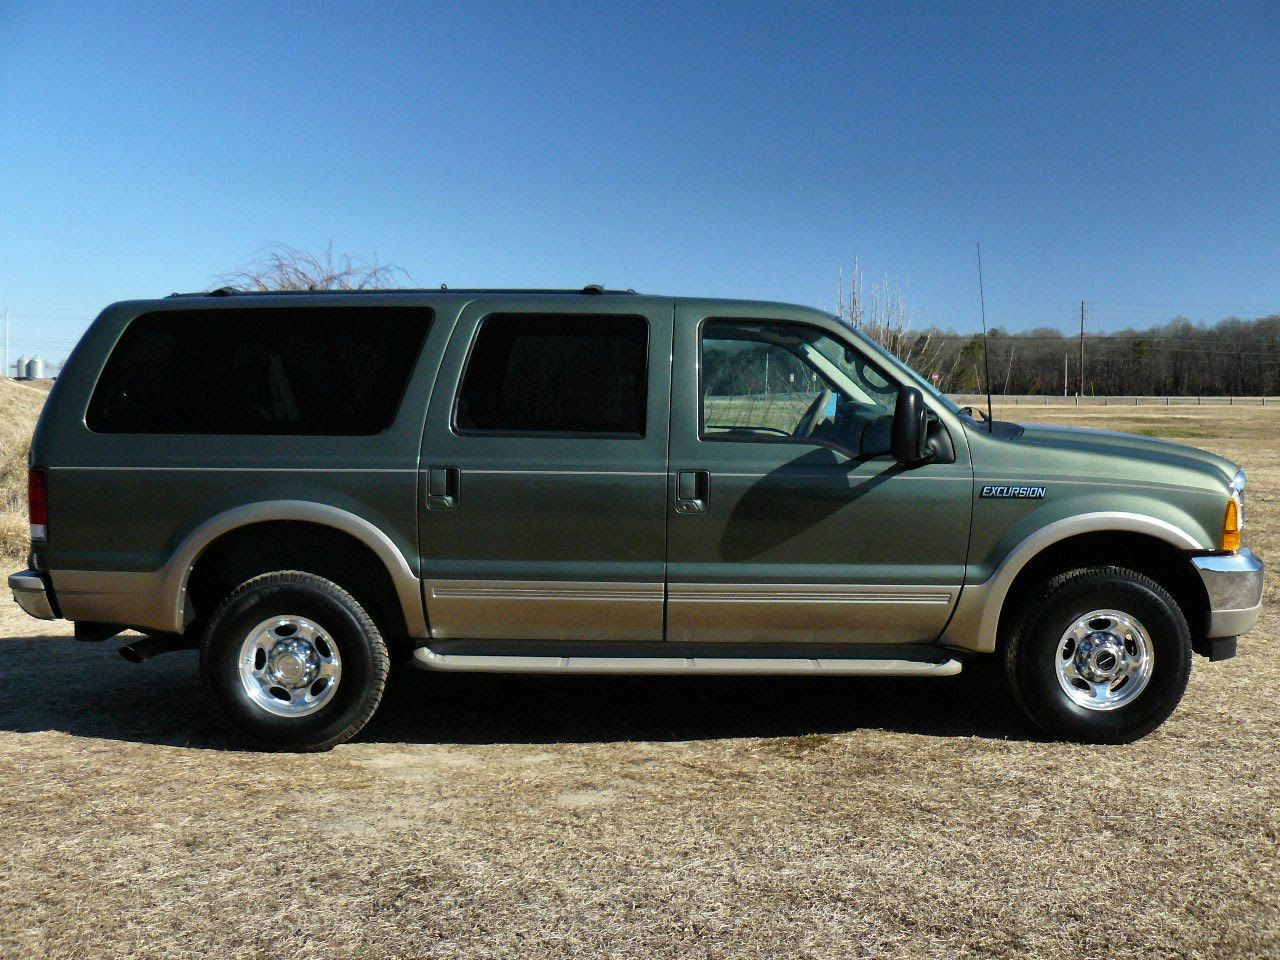 Image result for Ford Excursion 7.3 diesel | Motorized Road Vehicles ...